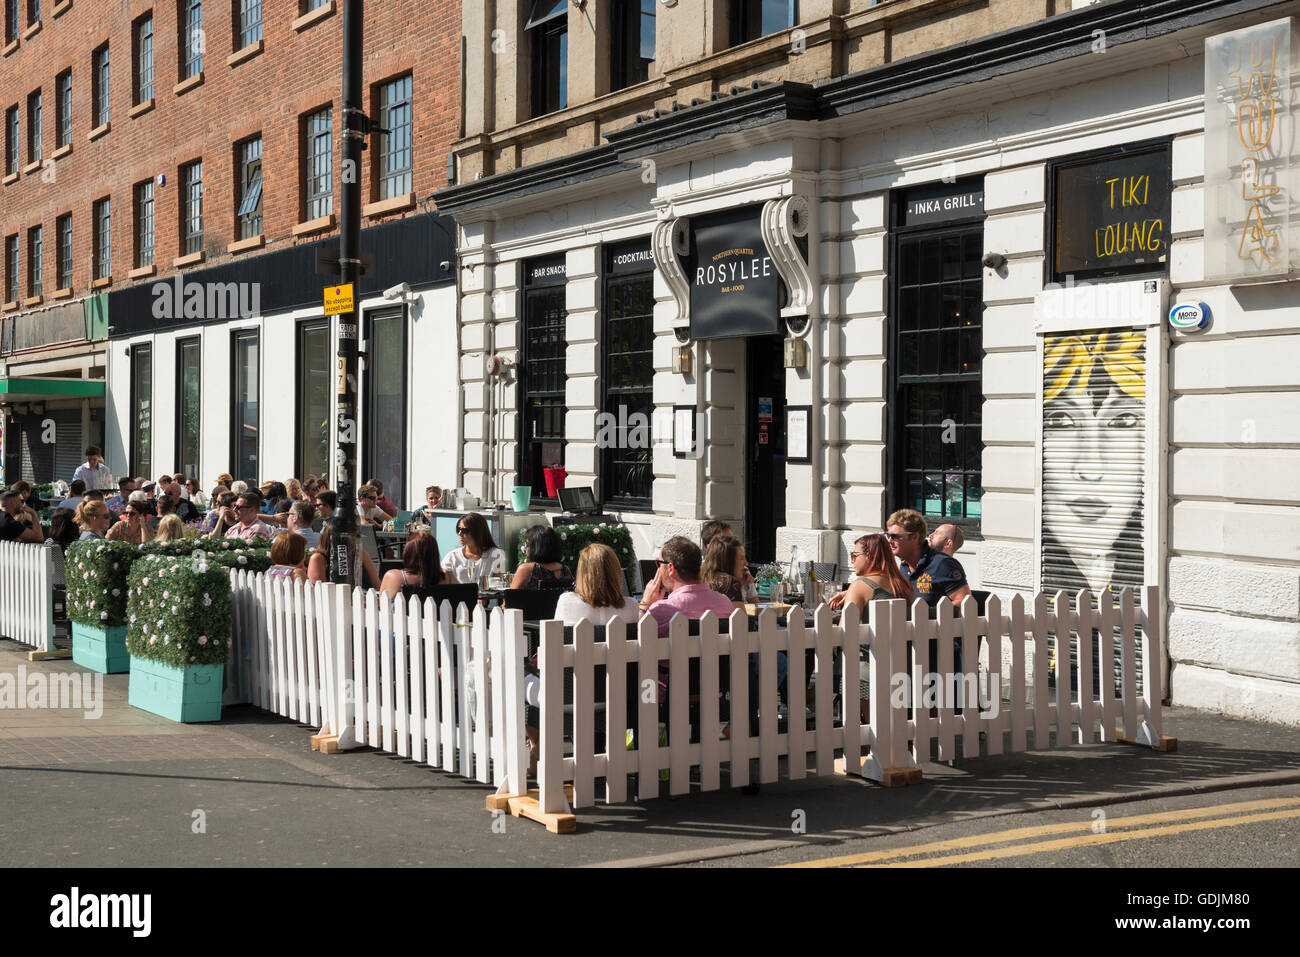 People Sit Outside Enjoying The Beer Garden Of Rosylee Bar And Stock Photo:  111663776   Alamy